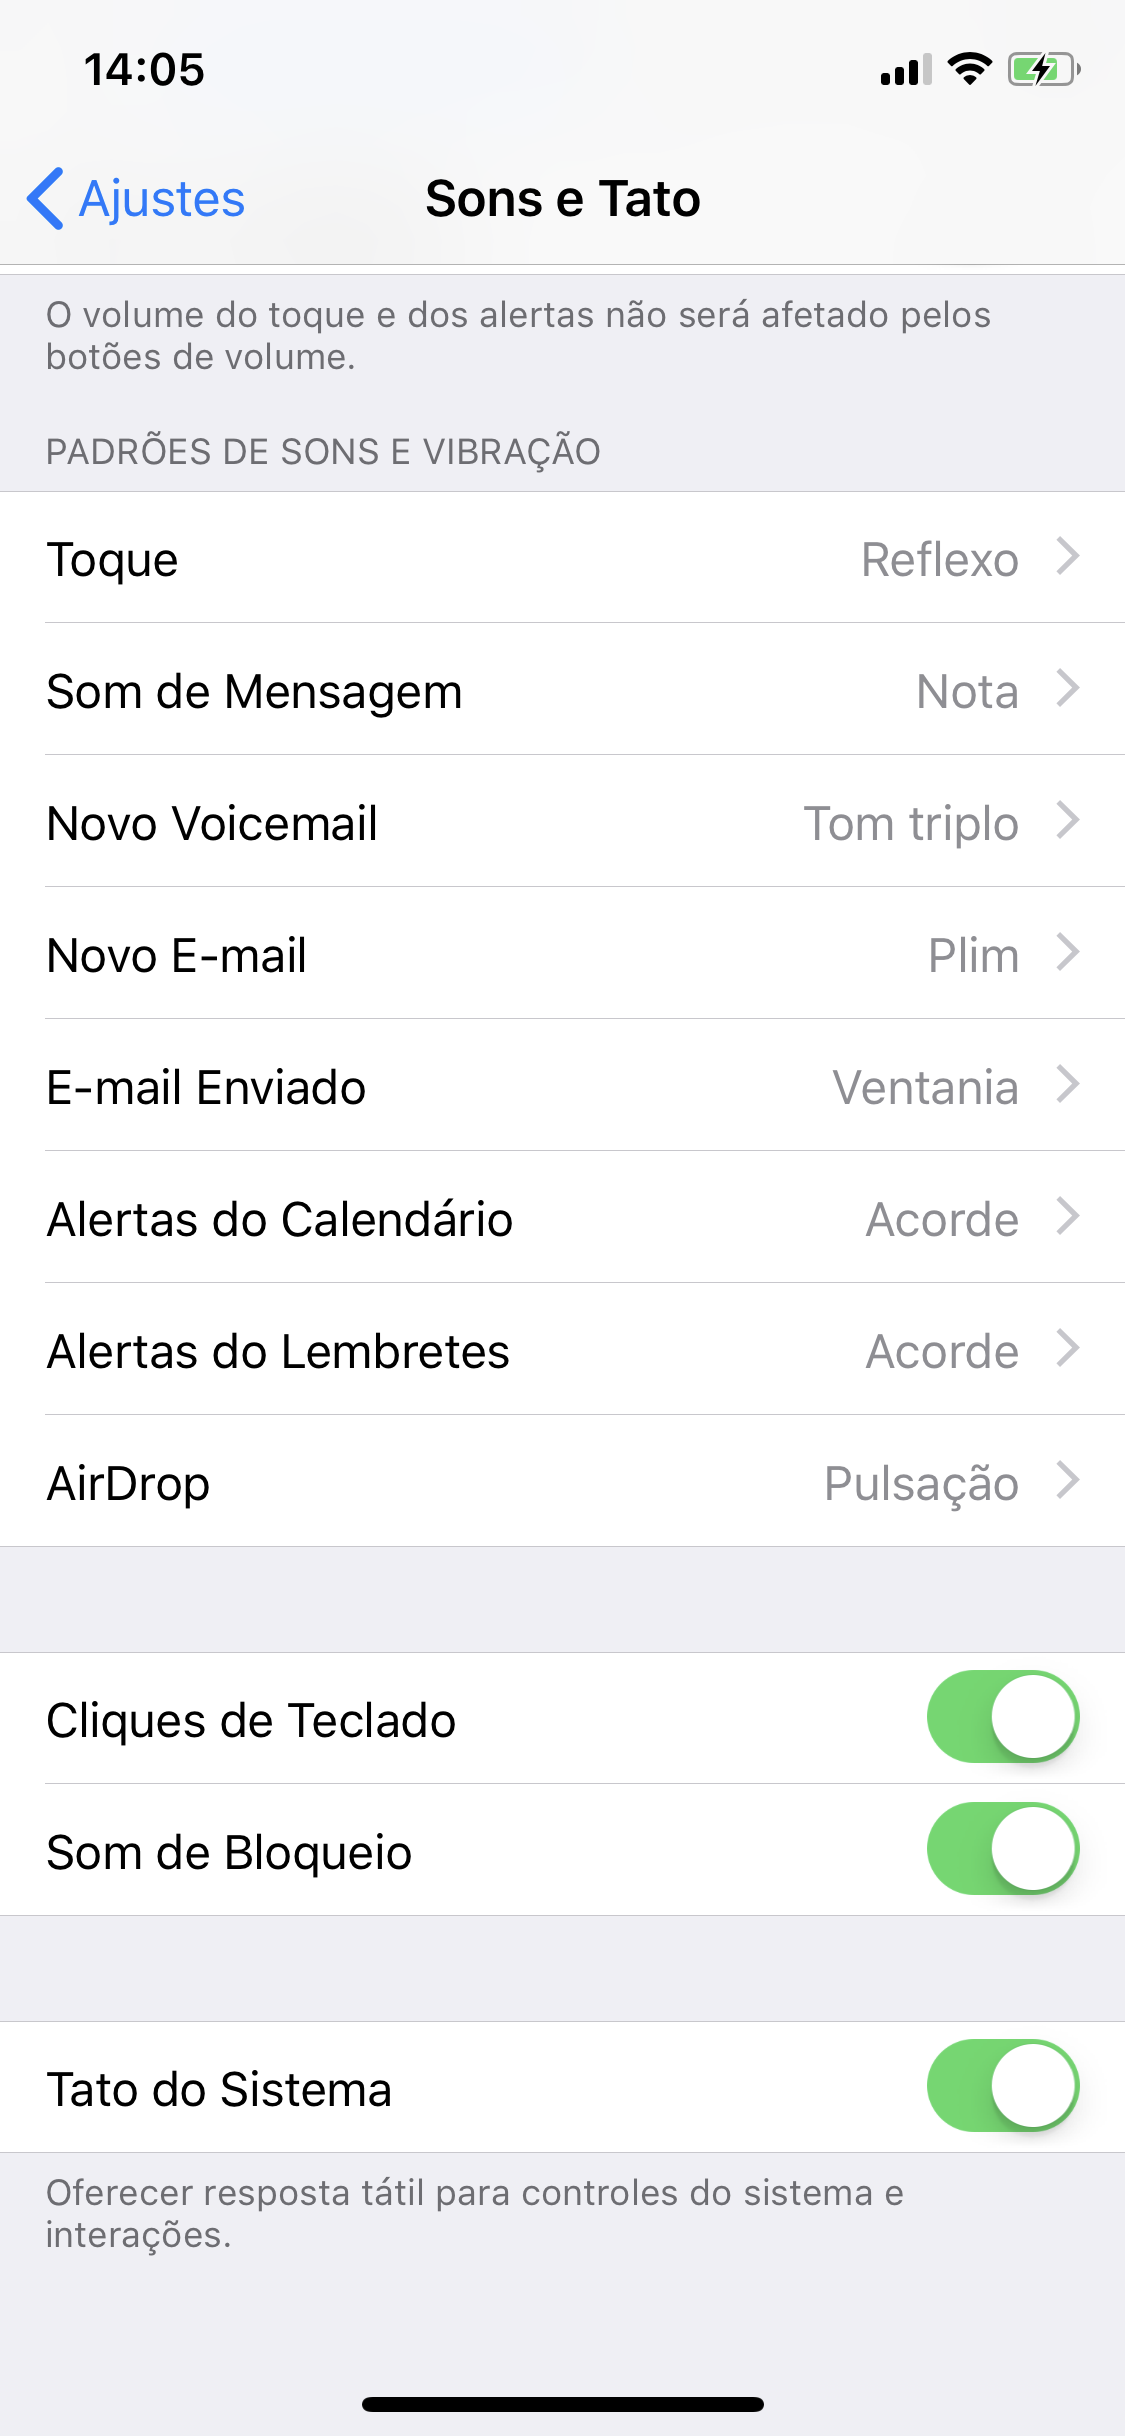 Ajustes do iOS - Sons e Tato